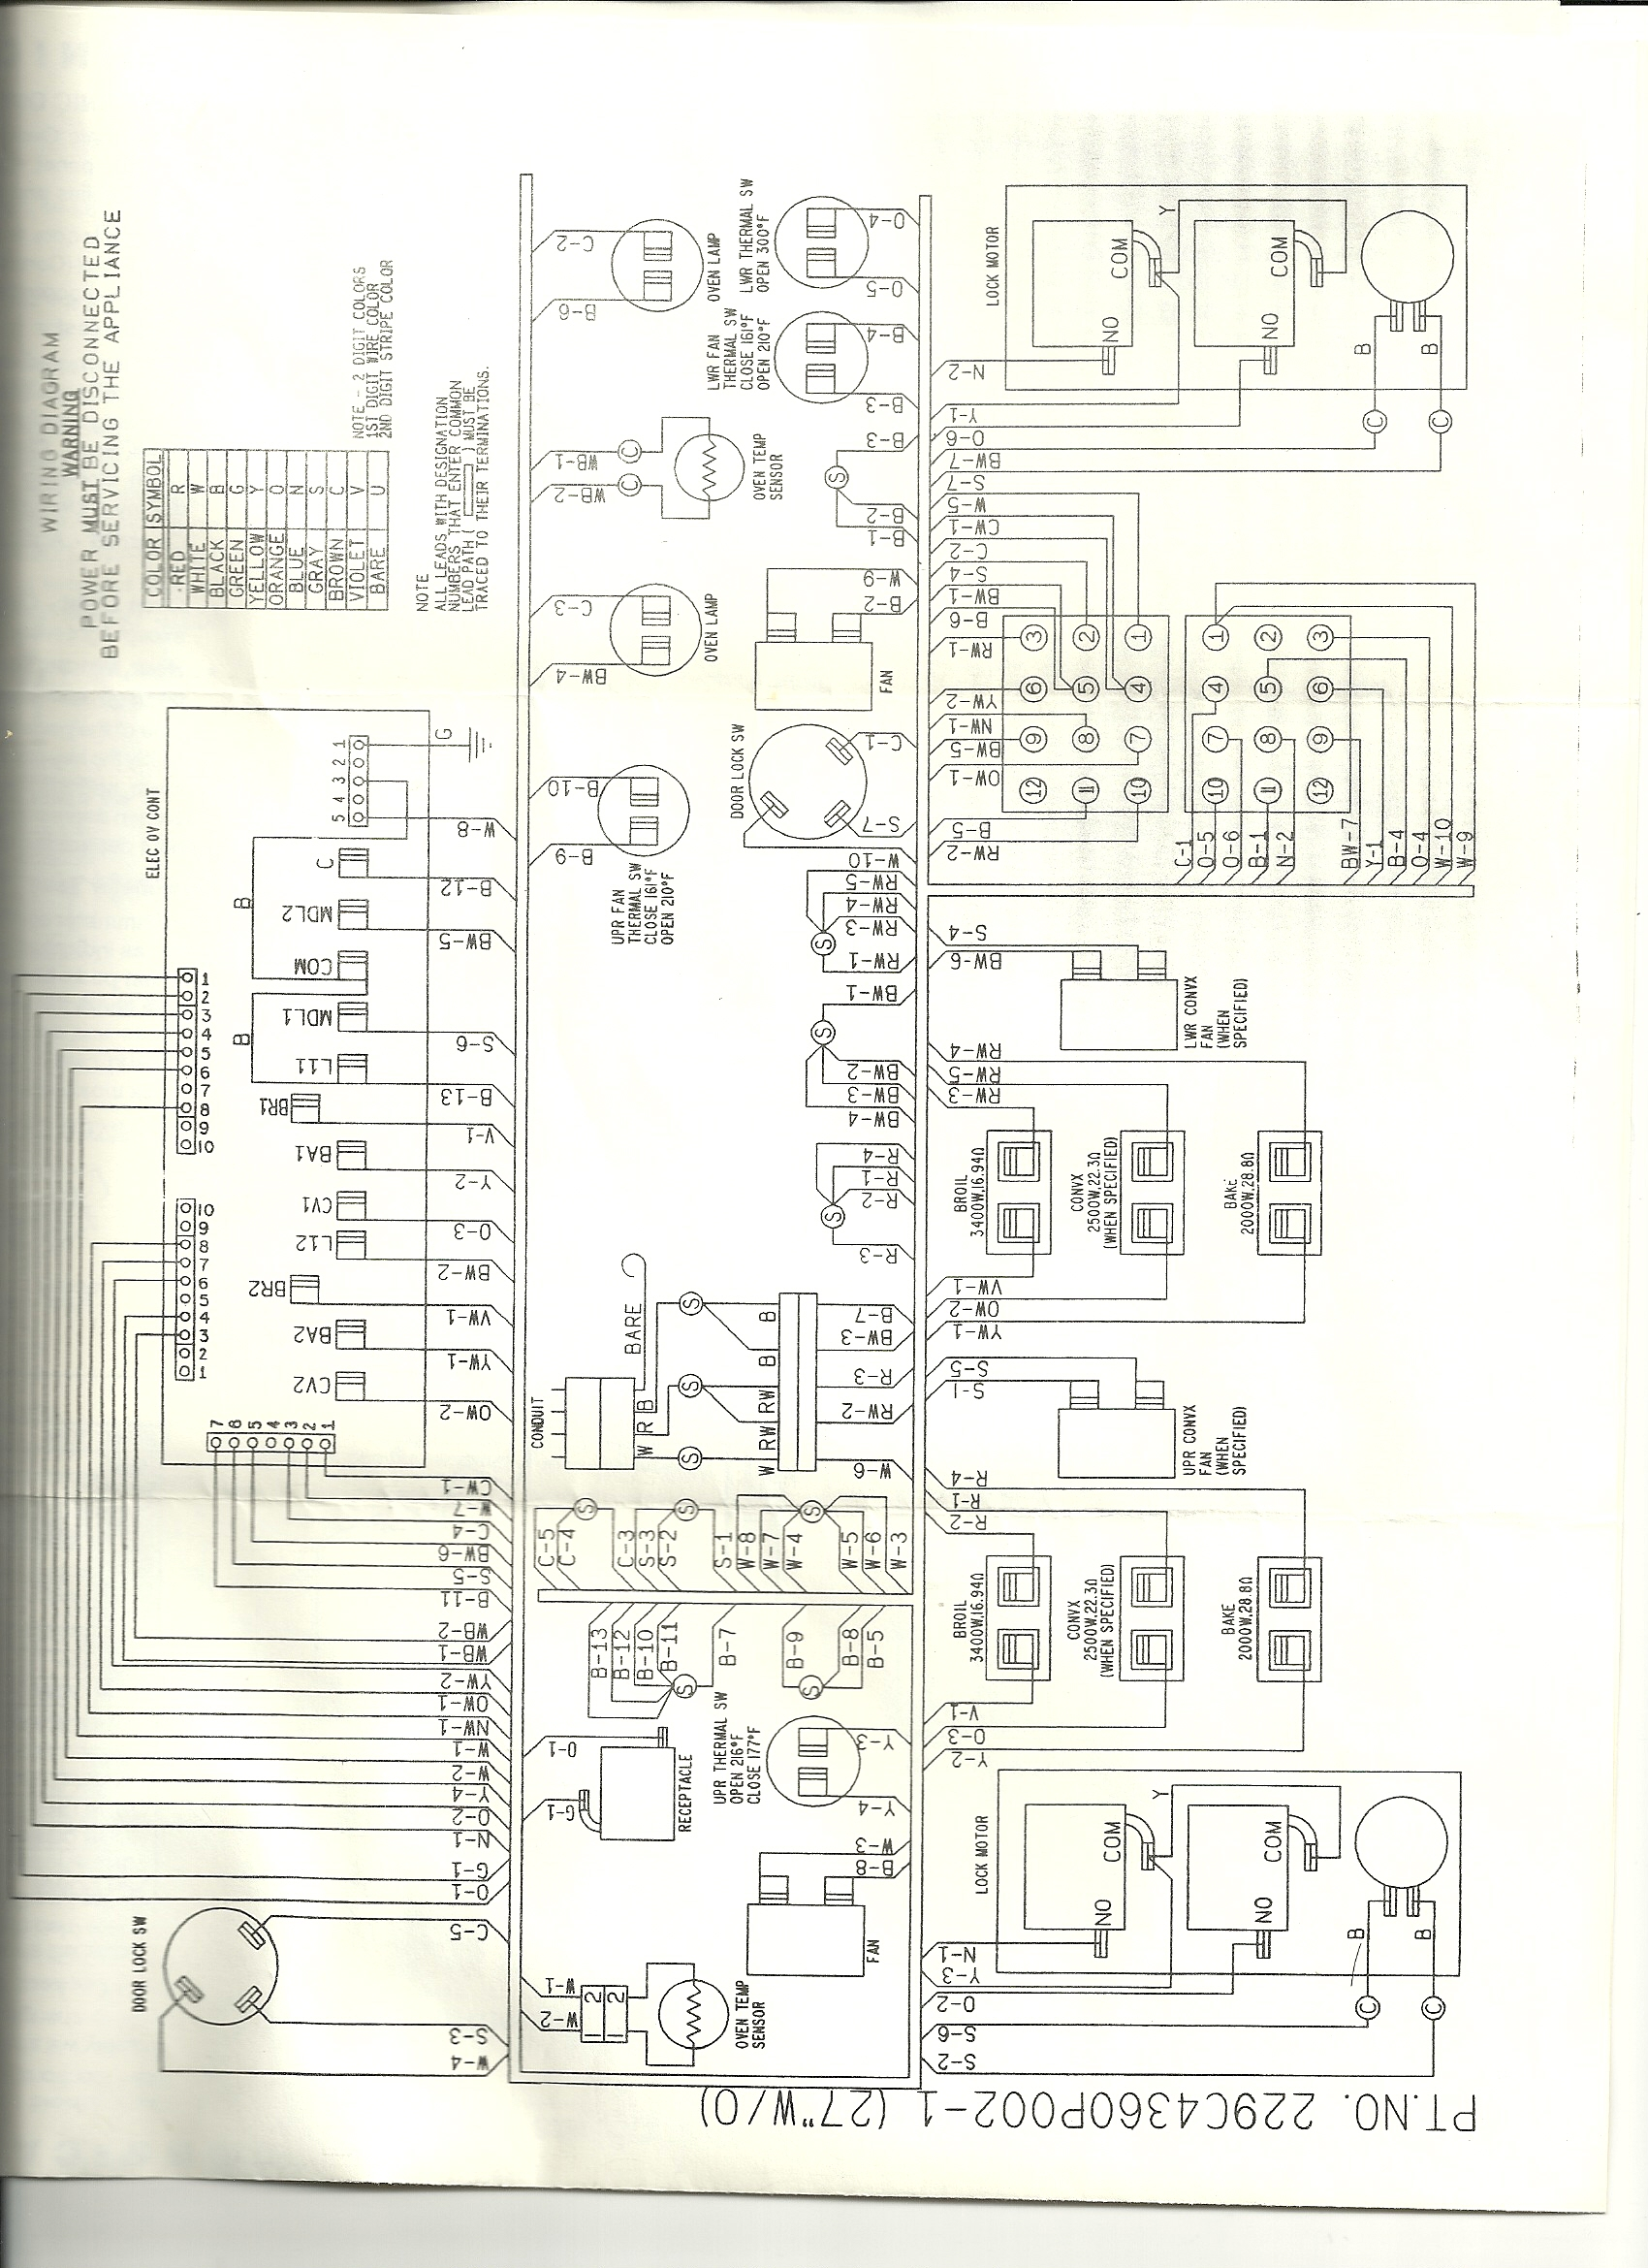 ge stove wiring diagram ge image wiring diagram ge wiring diagrams ge wiring diagrams on ge stove wiring diagram